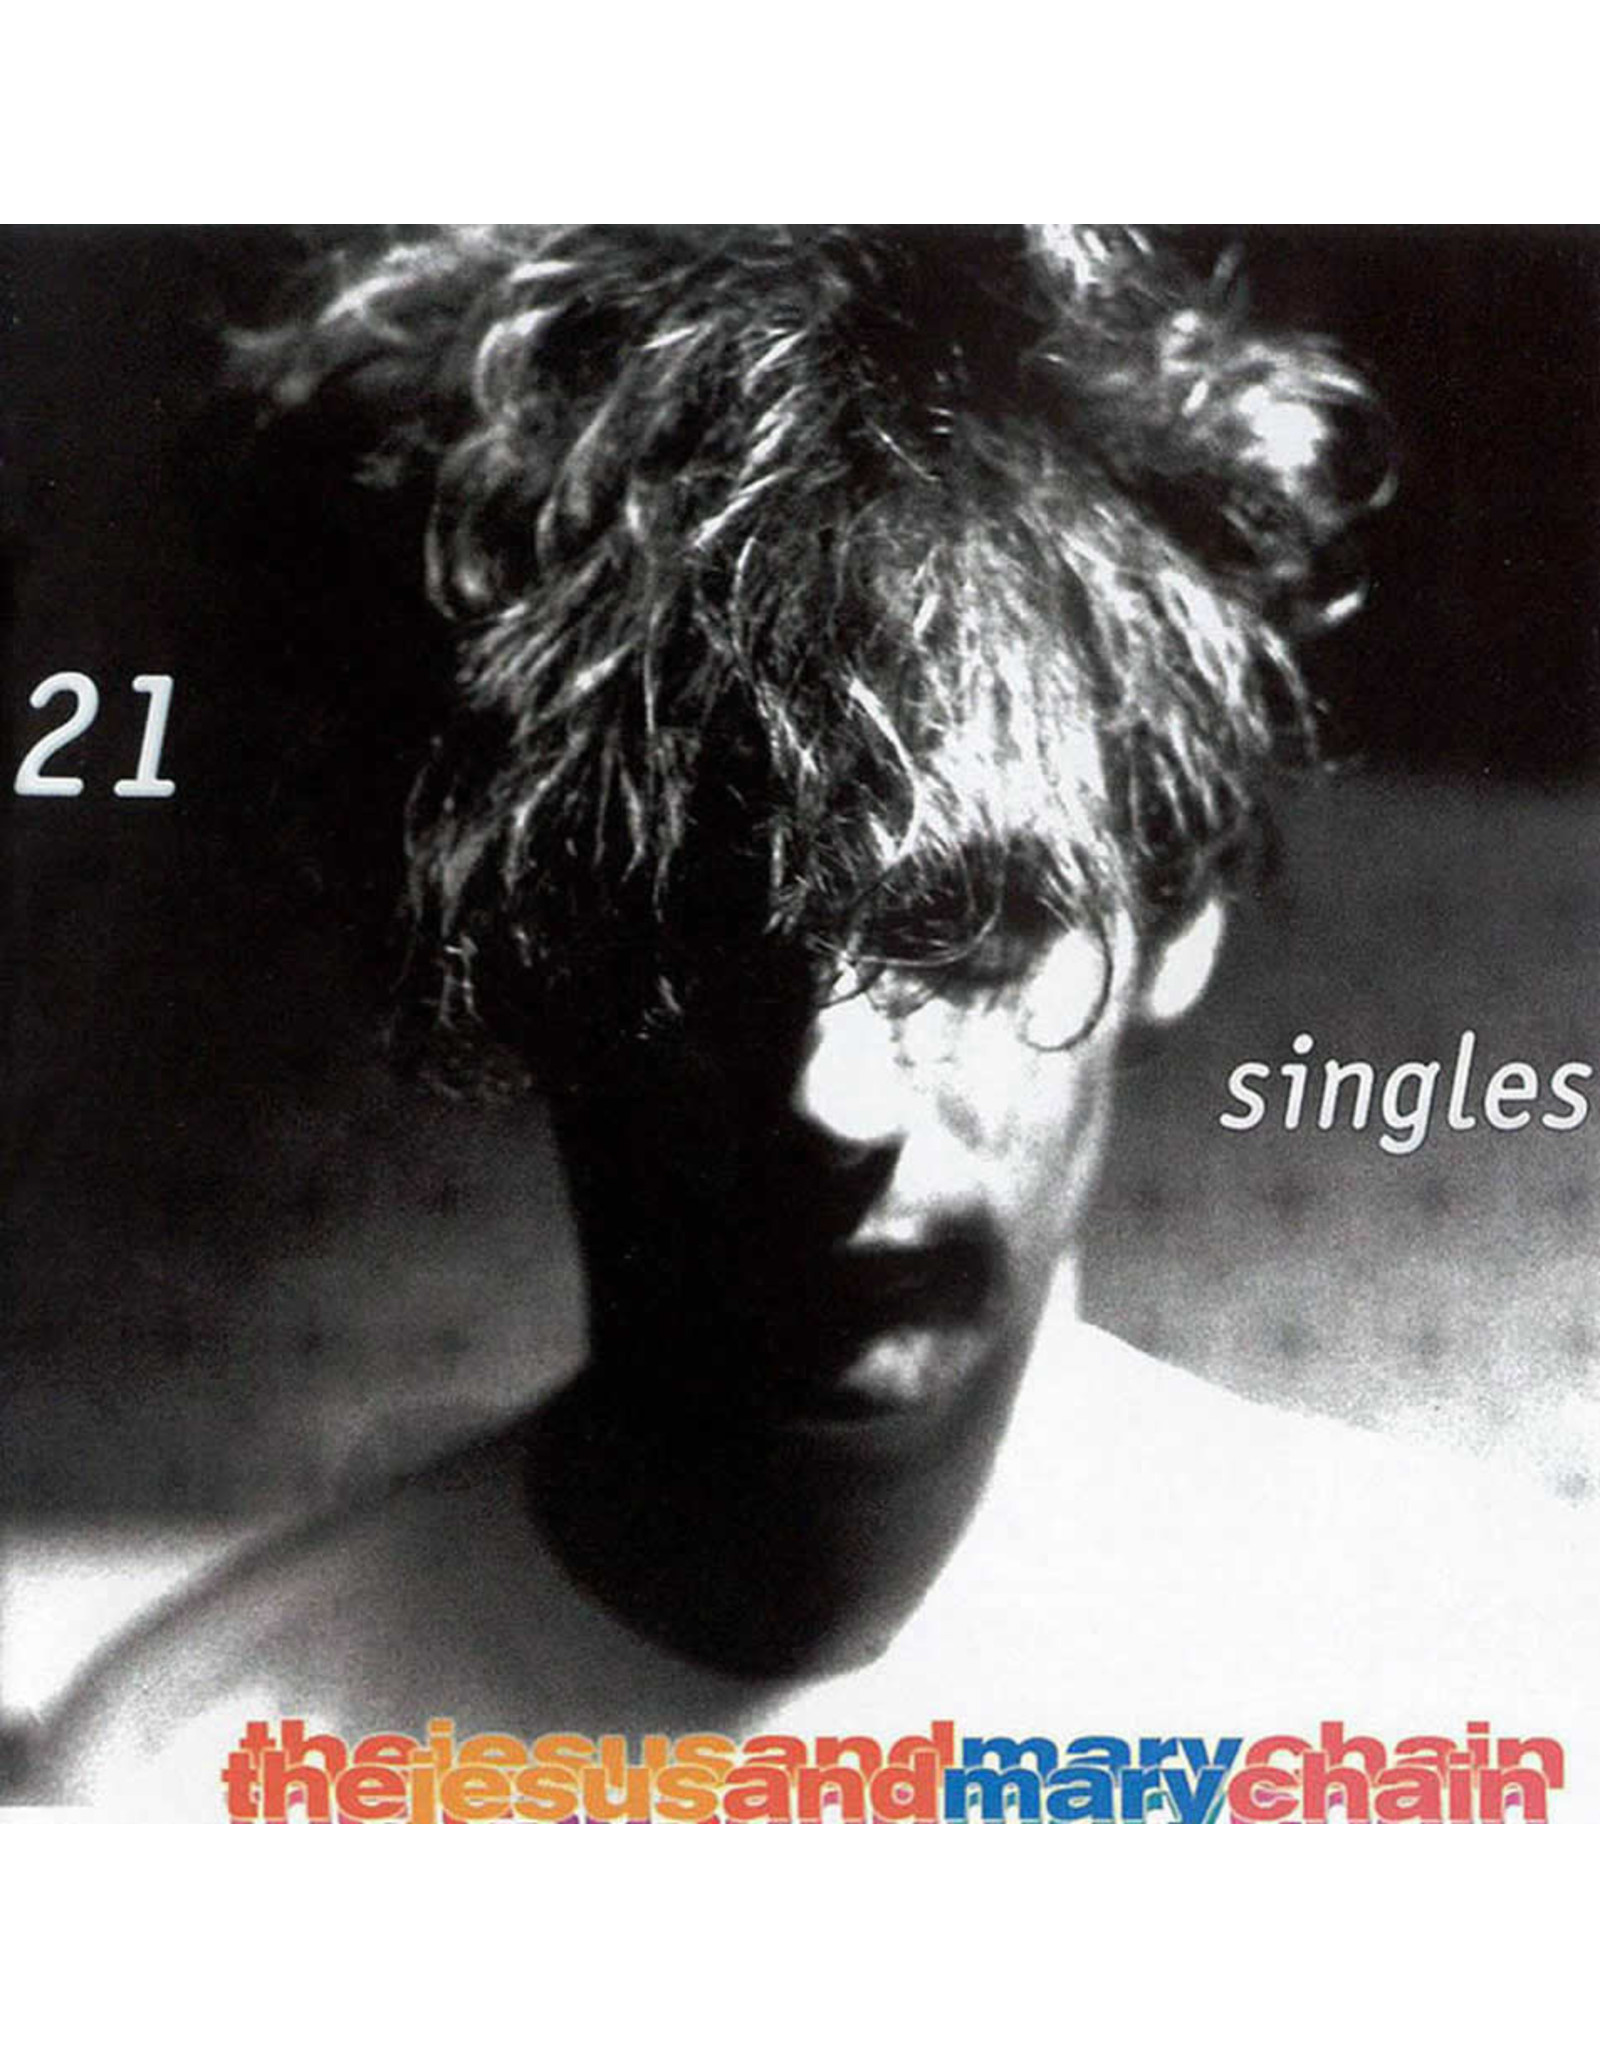 Jesus & Mary Chain - 21 Singles